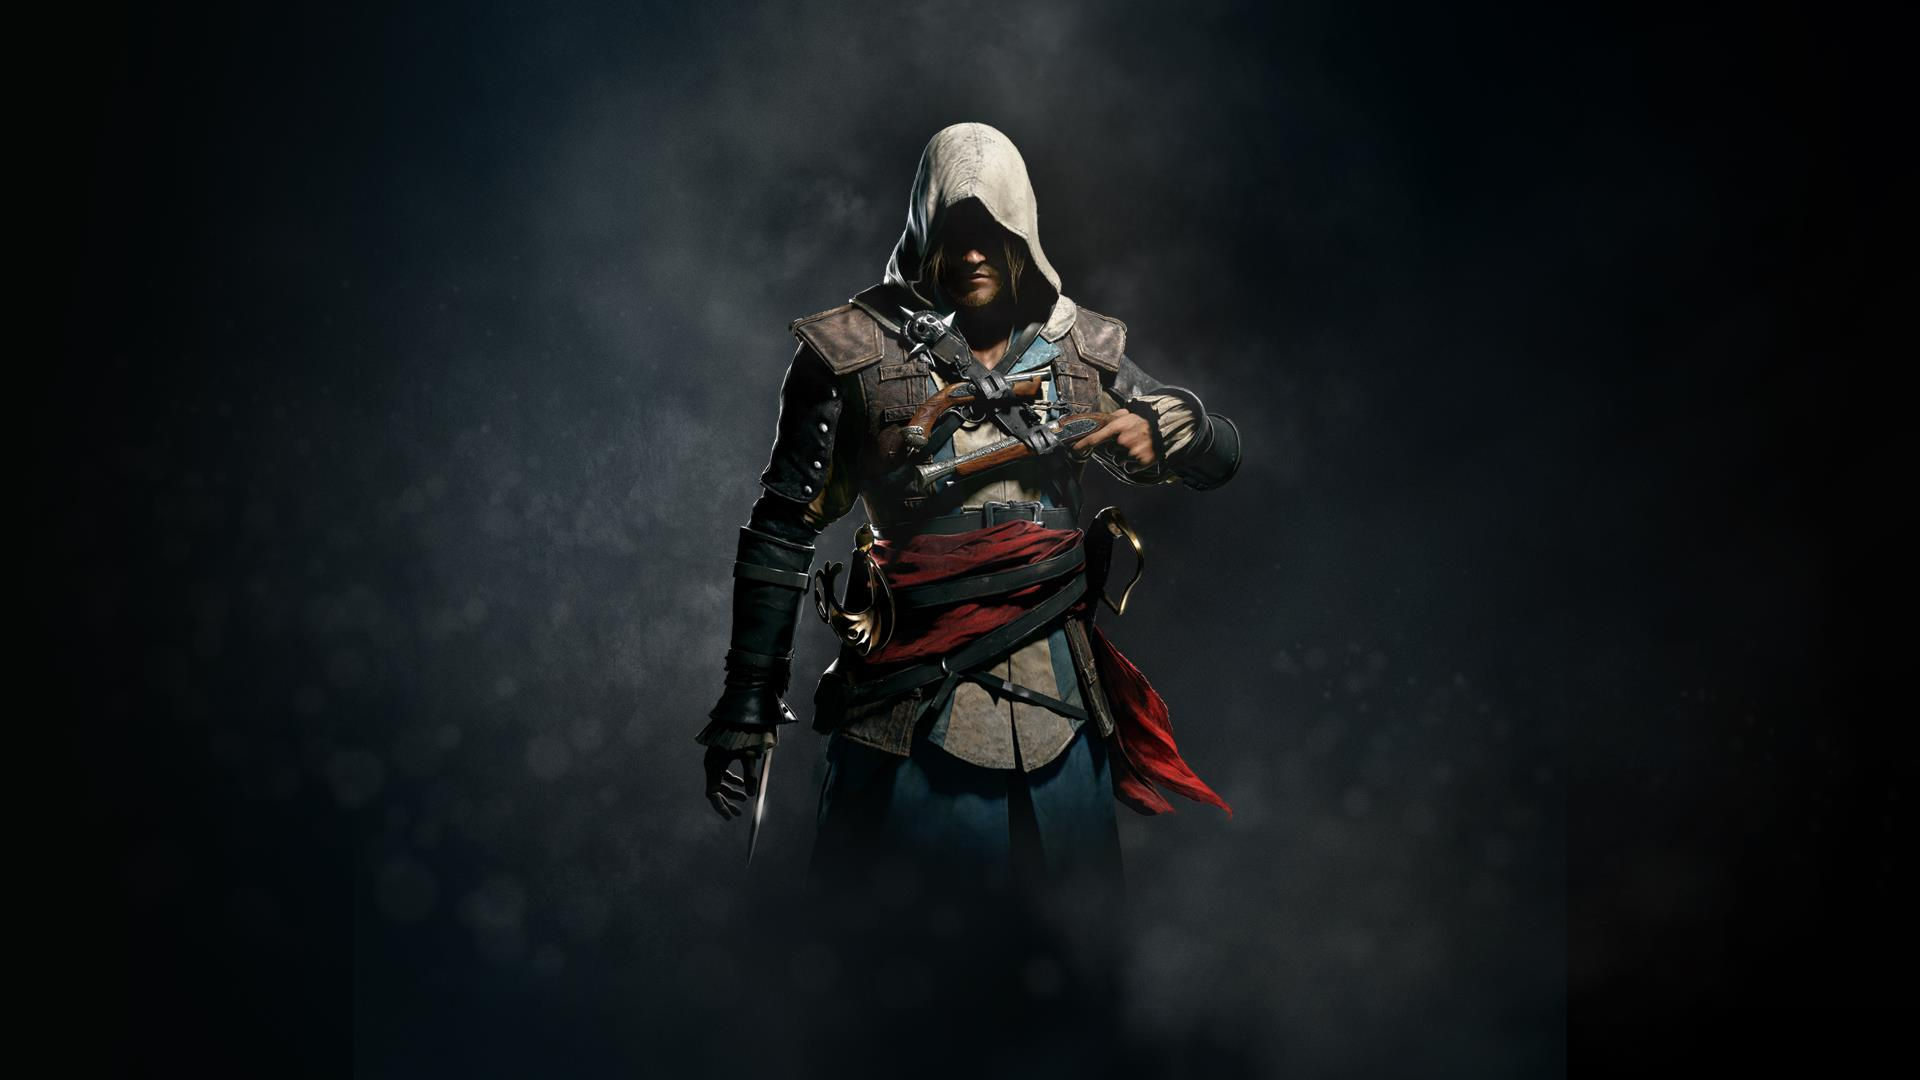 Mer-man in Assassin's Creed IV: Black Flag